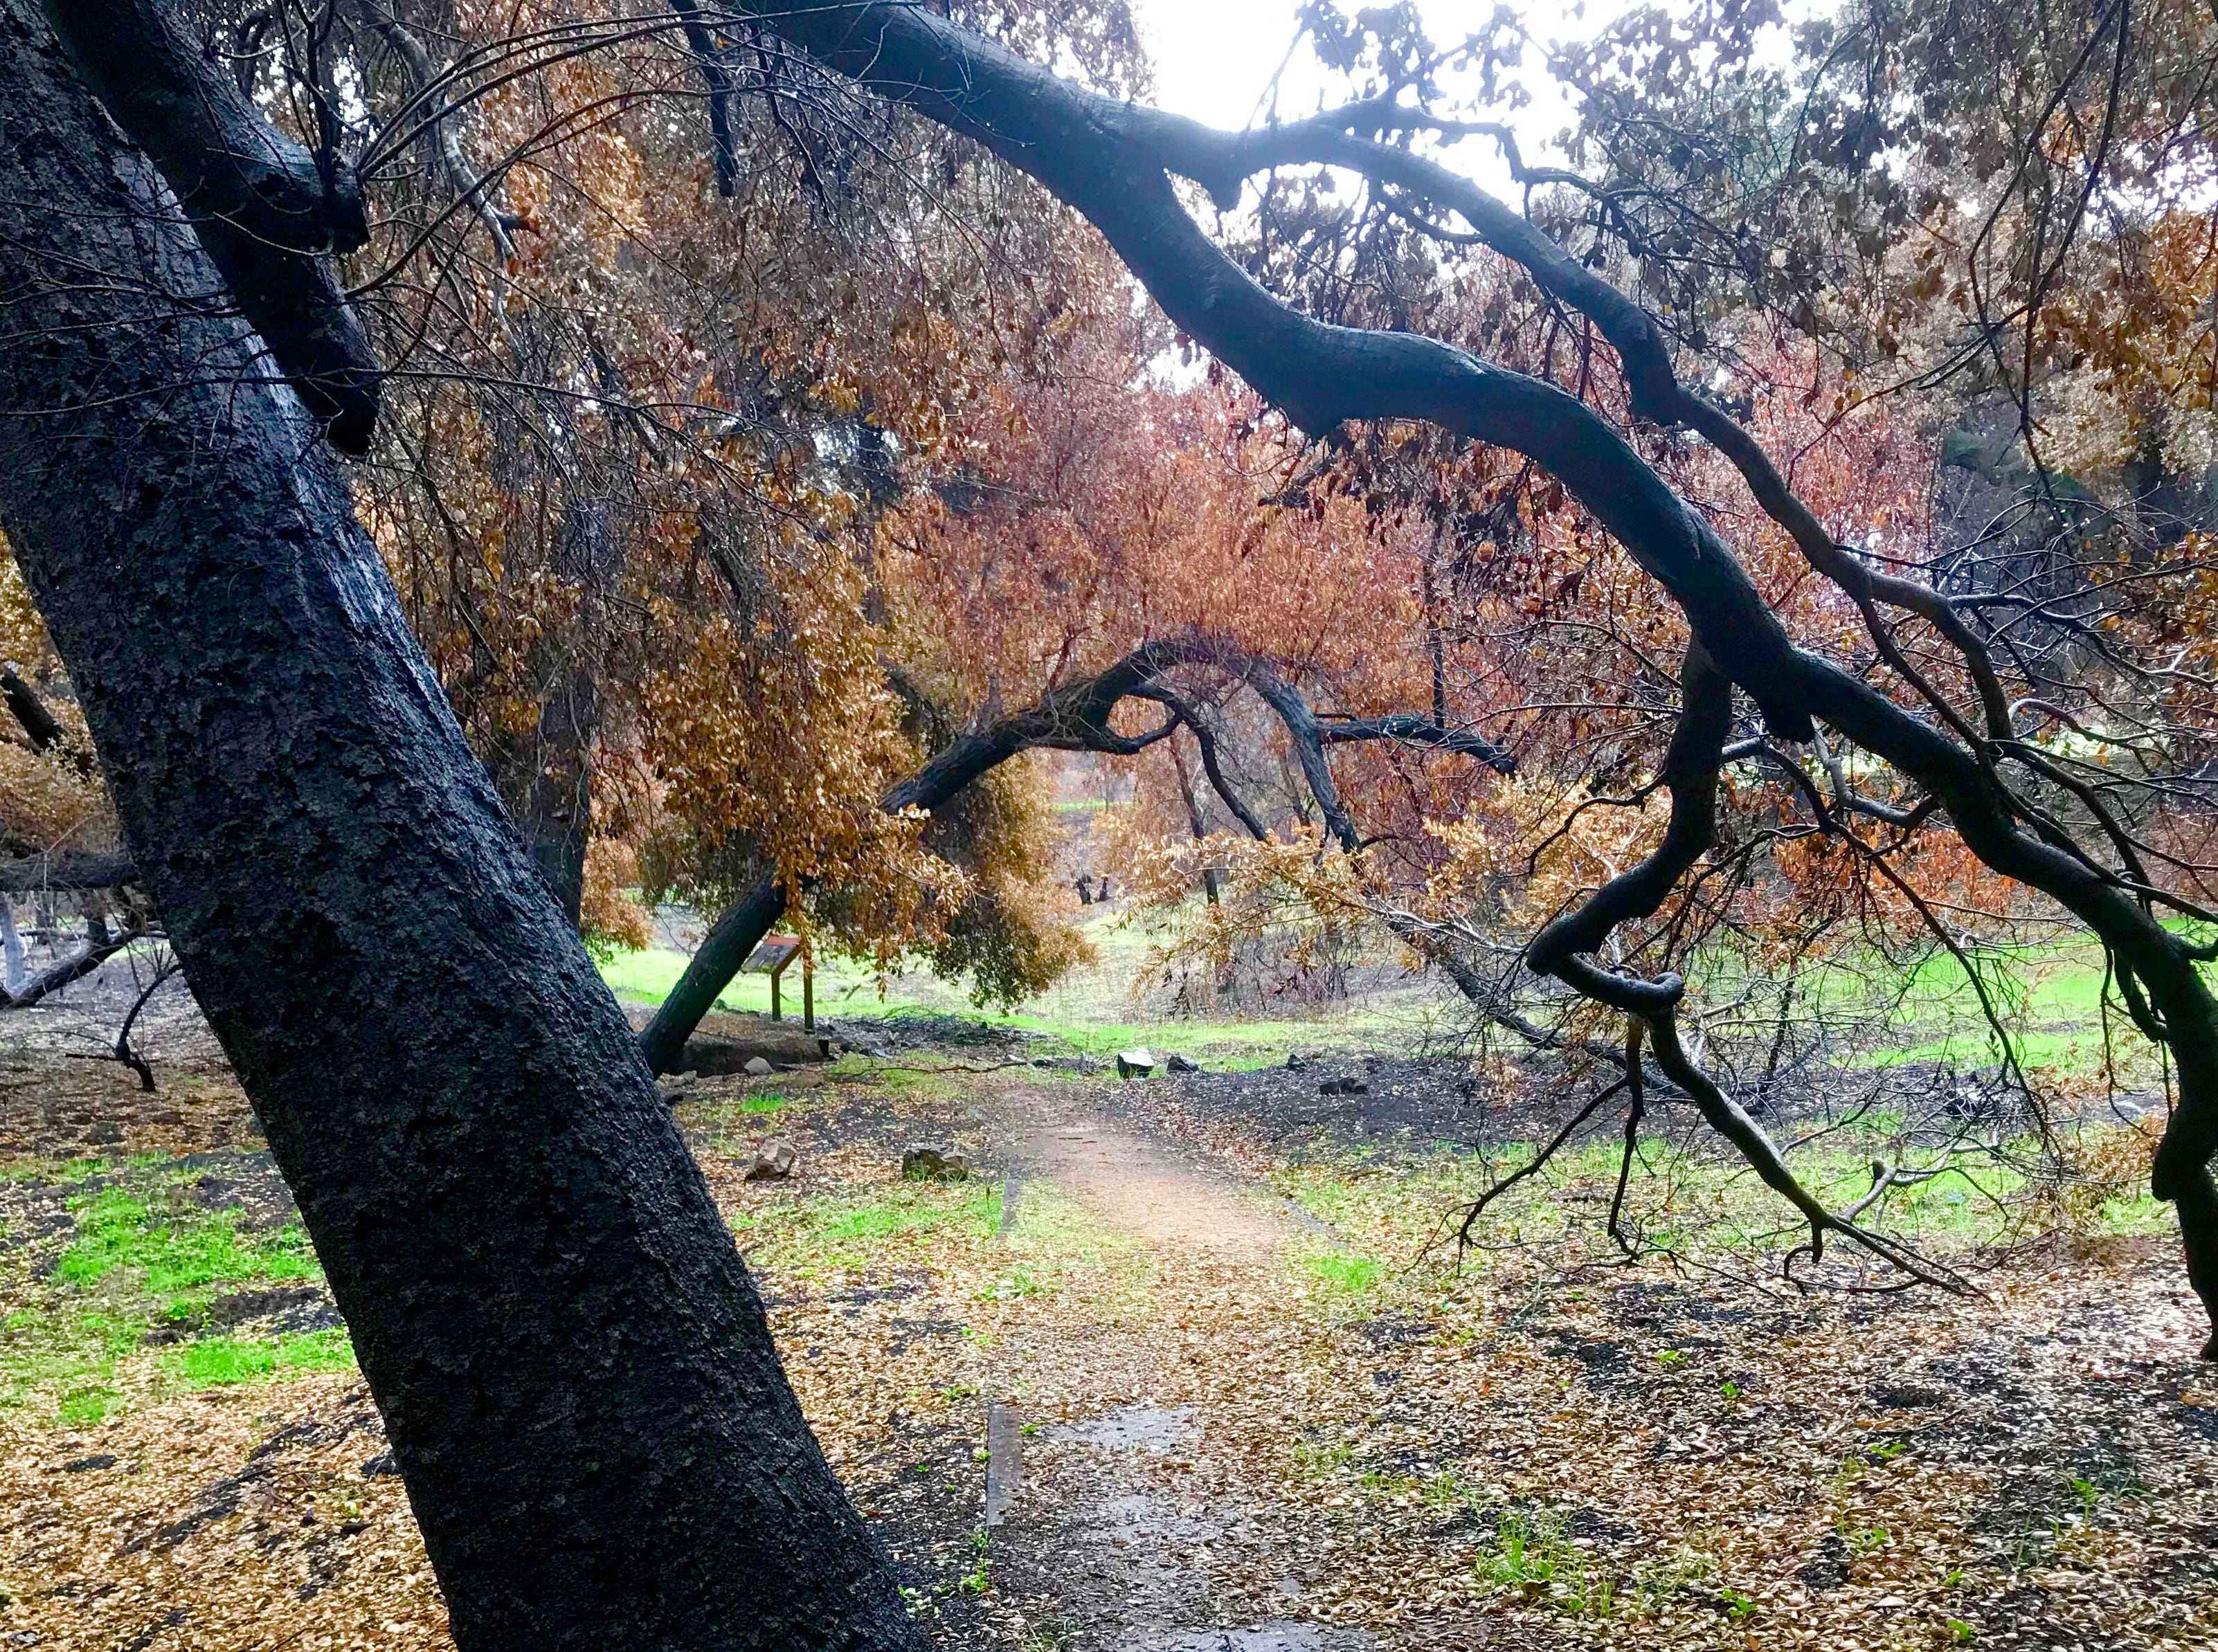 The Woolsey Fire burned 75 percent of Malibu Creek State Park in Calabasas, but winter rains quickly led to green grass.